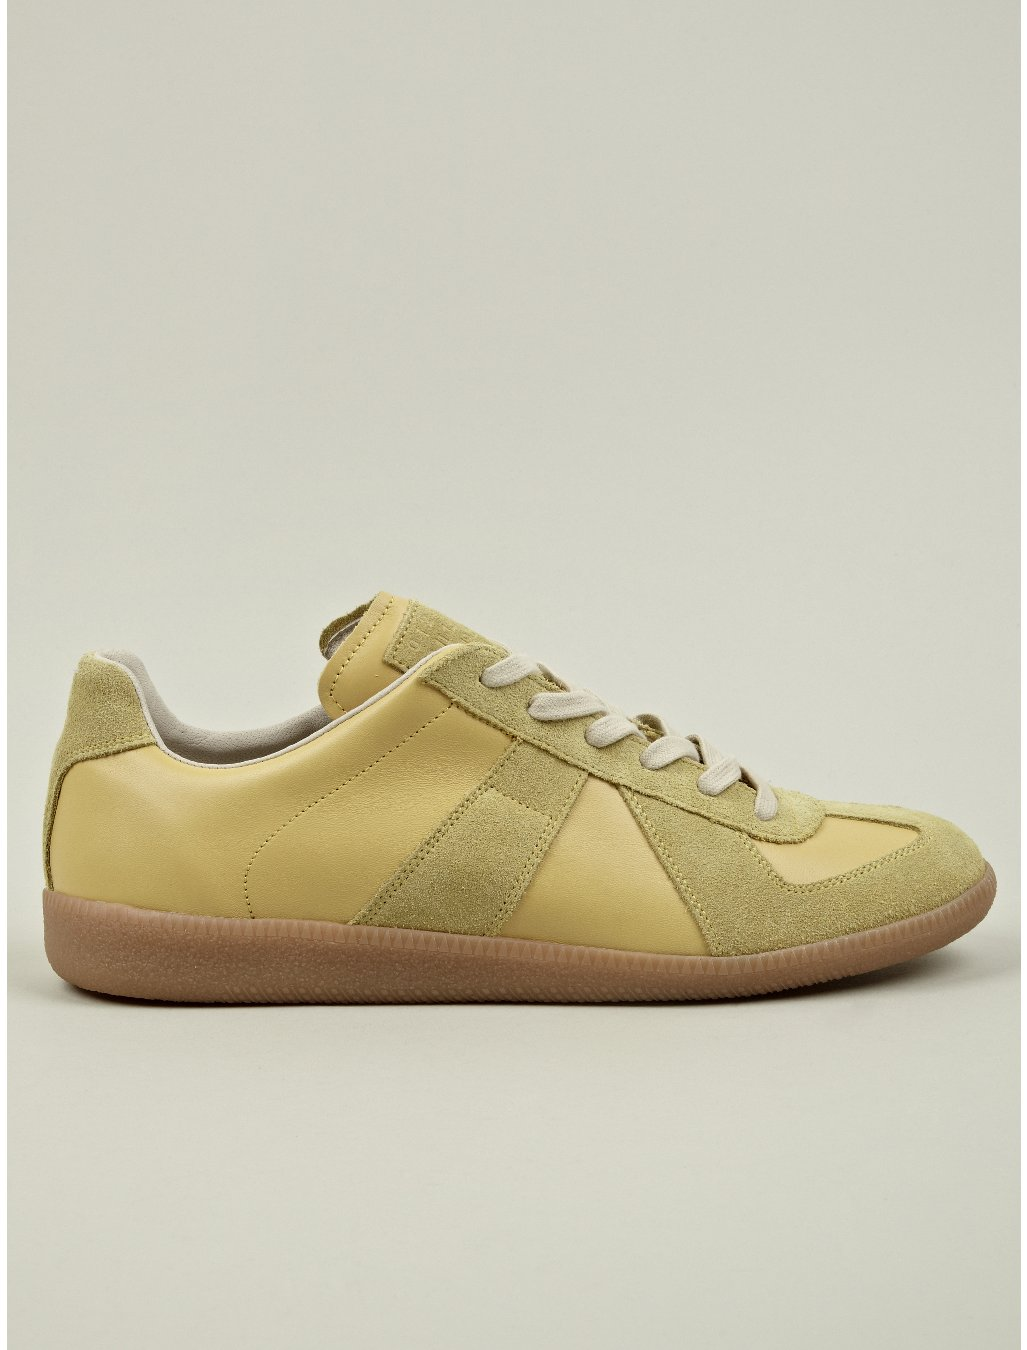 maison martin margiela 22 mens yellow replica low top leather sneakers in yellow for men lyst. Black Bedroom Furniture Sets. Home Design Ideas